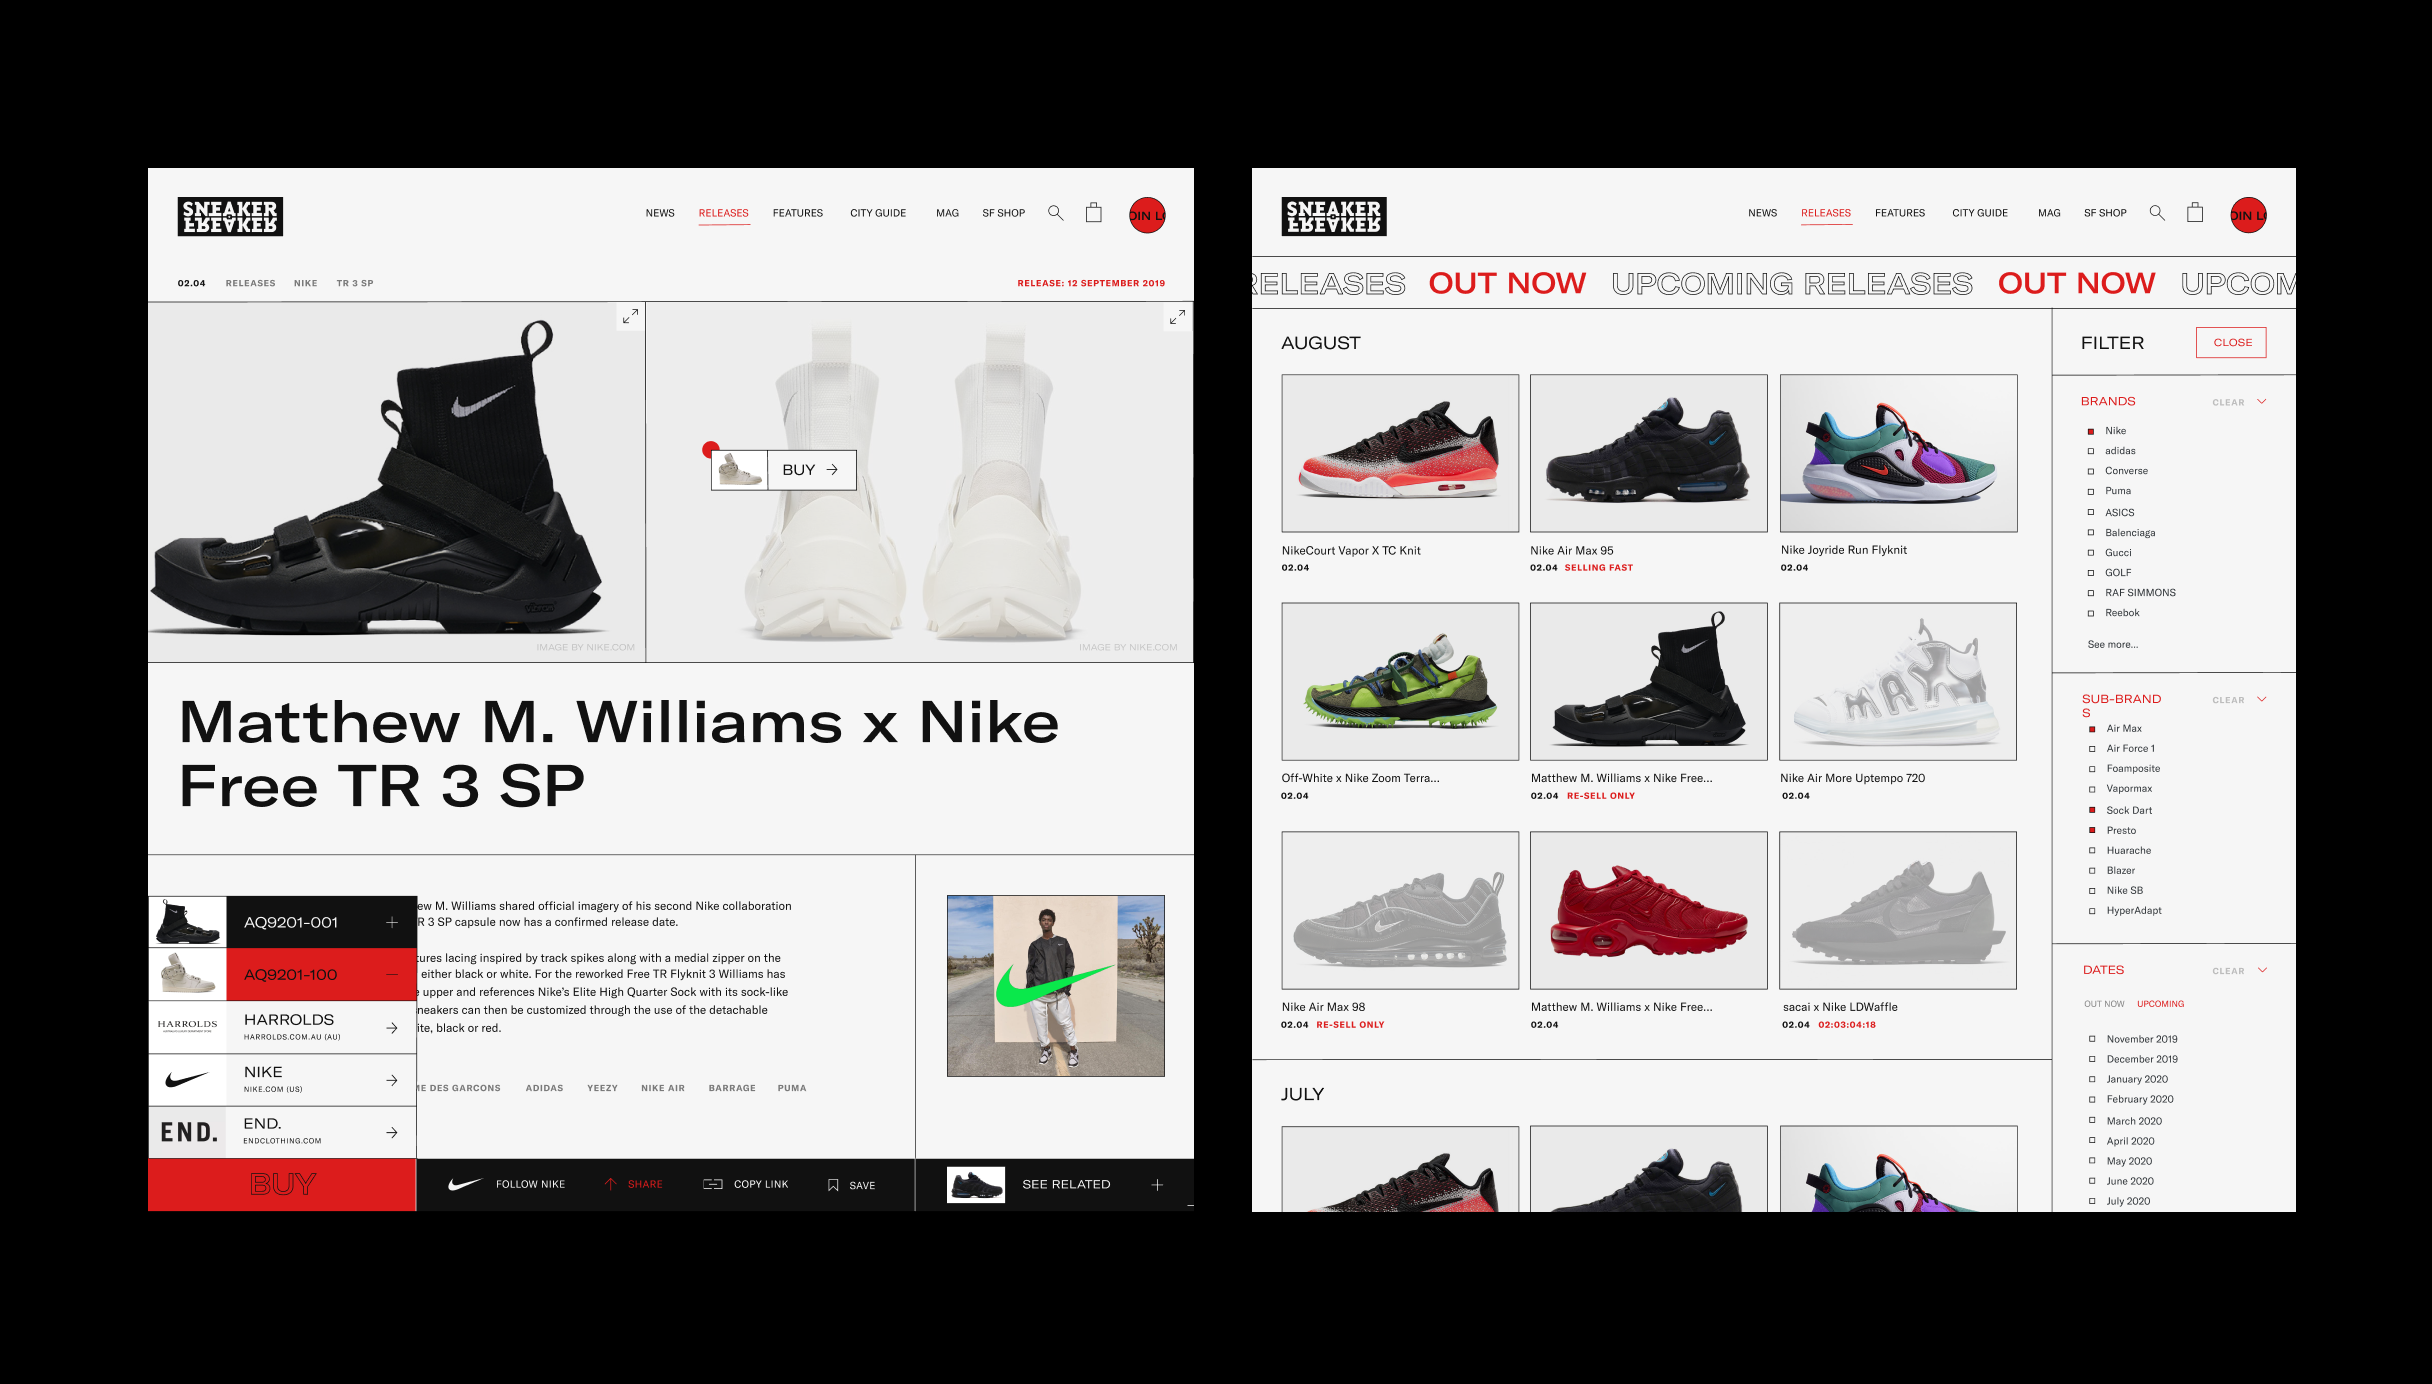 Screens showing release article and releases page